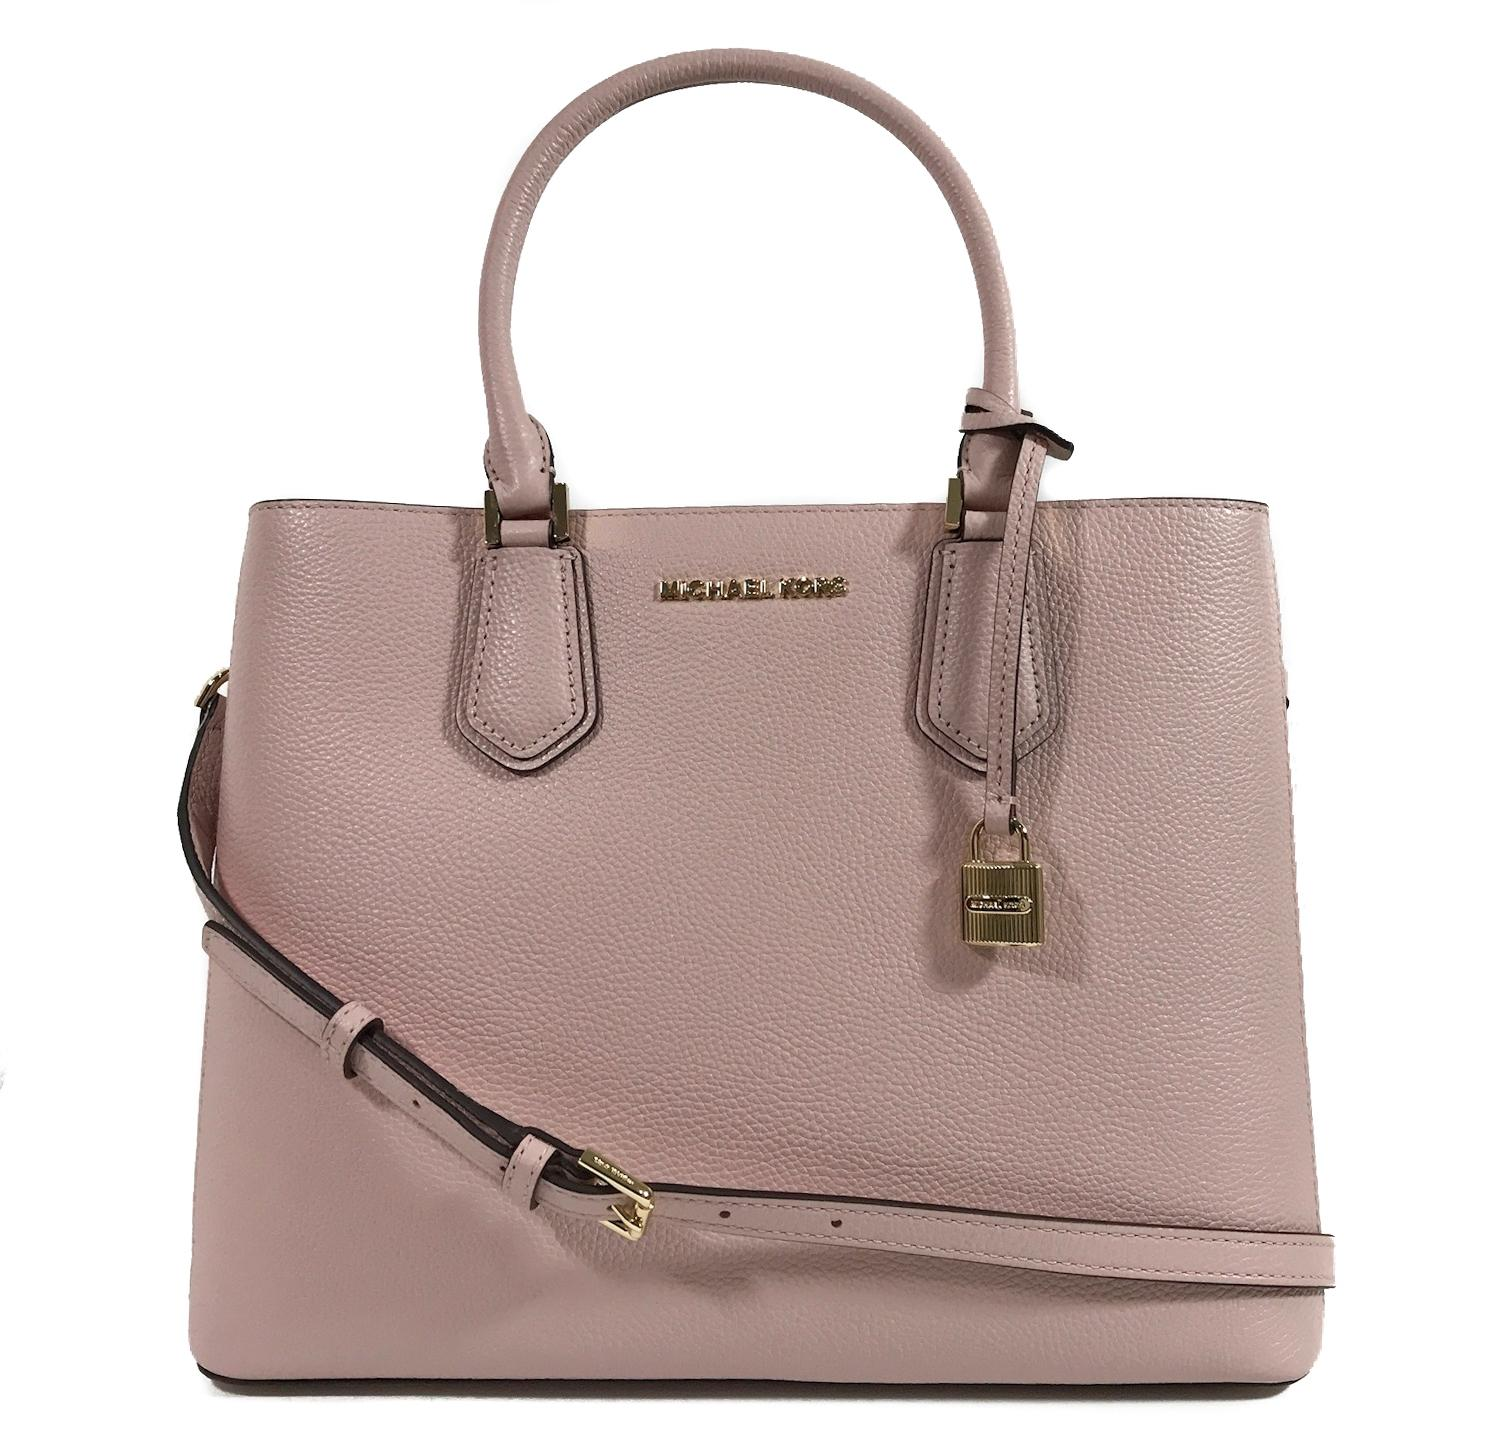 b121774fbbc4 ... new zealand michael kors bags mk crossbody bags satchel in pink b3e66  3b0e8